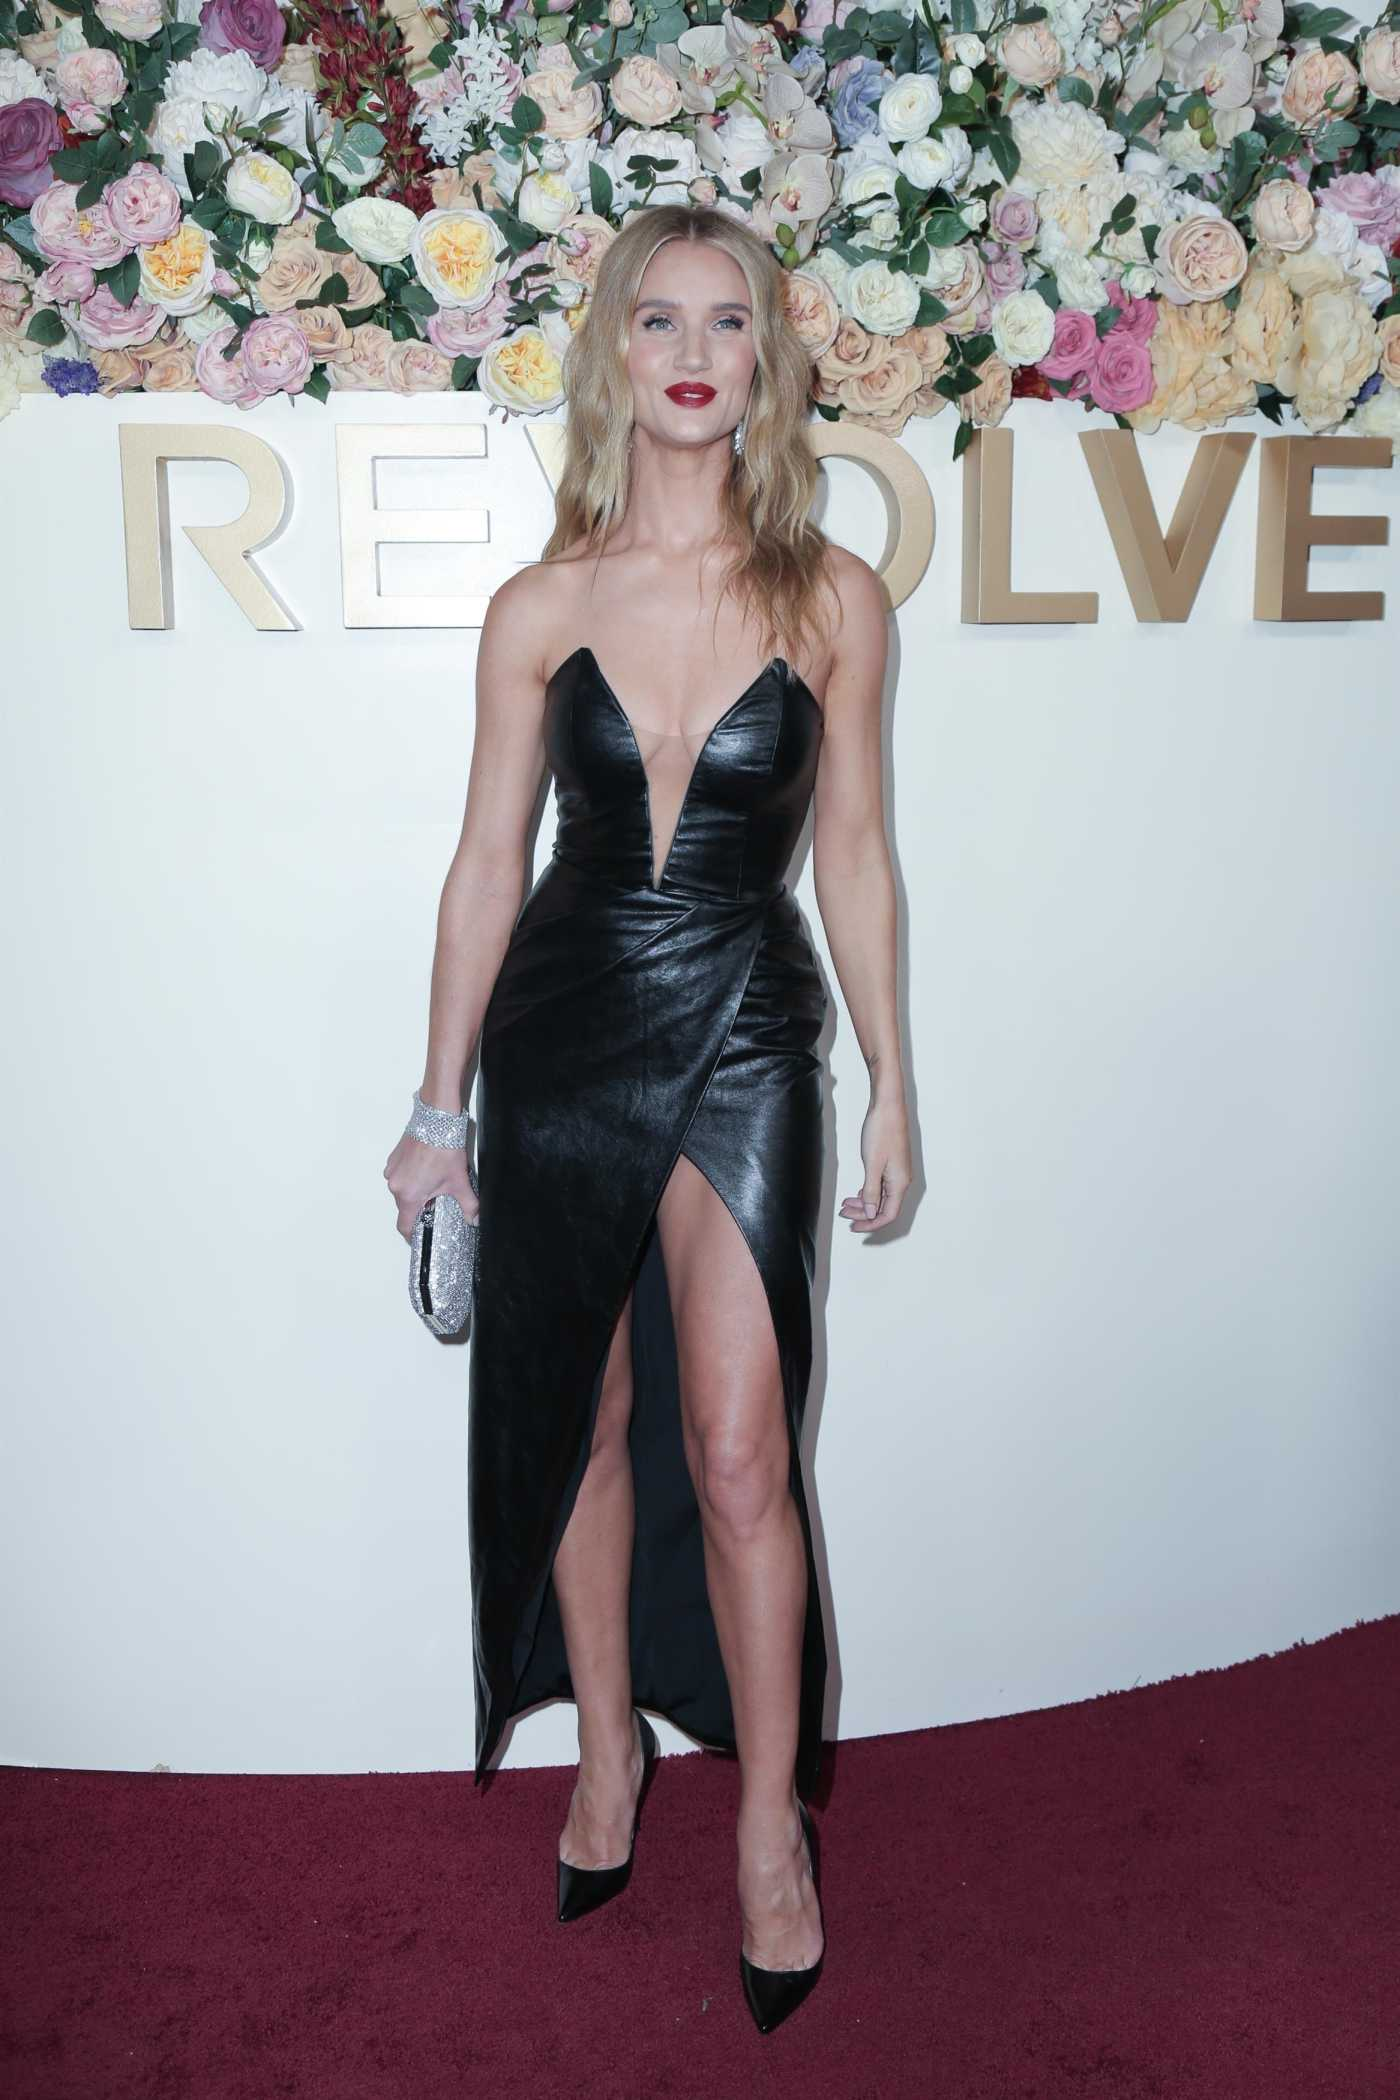 Rosie Huntington-Whiteley Attends the 3rd Annual Revolve Awards at Goya Studios in Hollywood 11/15/2019